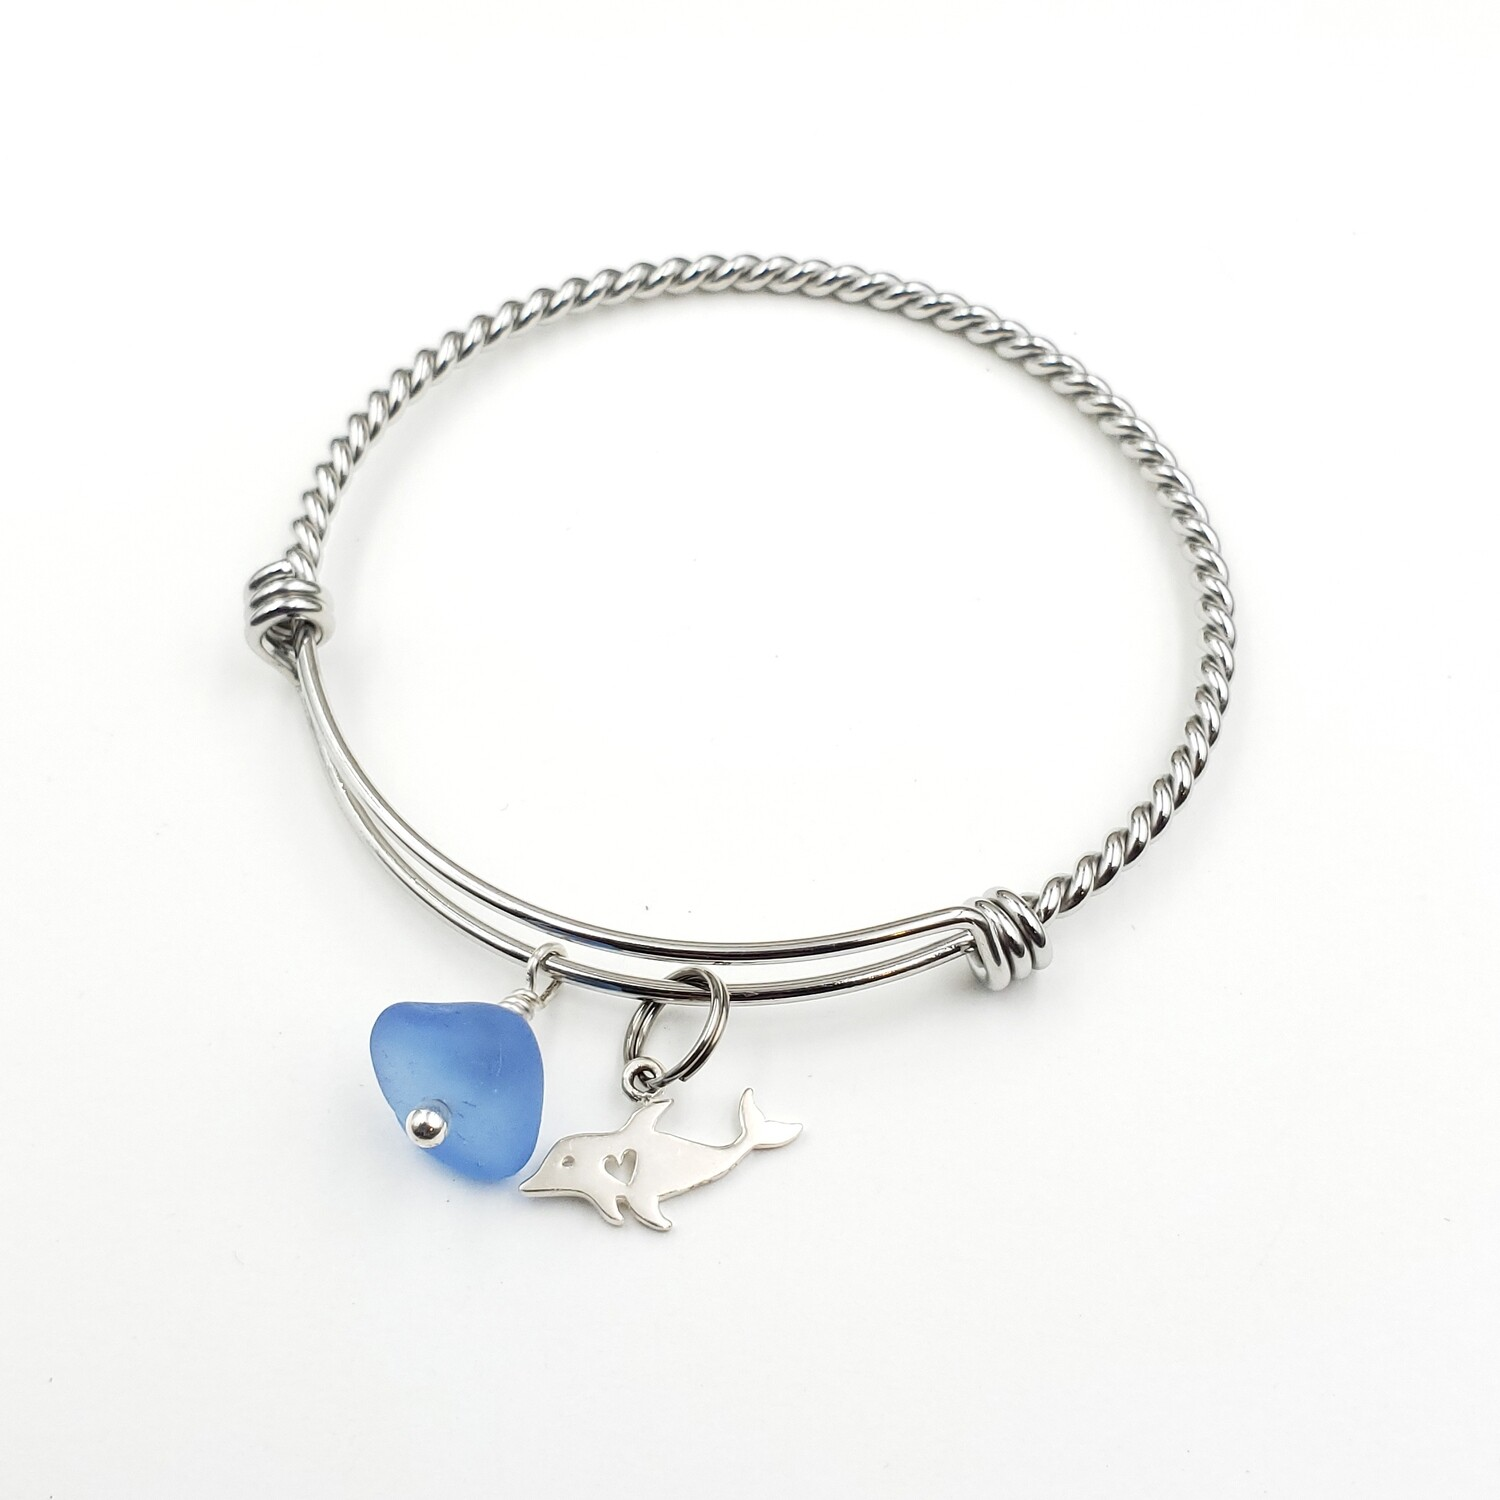 Twisted Bangle Bracelet with Dolphin Heart Charm and Cornflower Blue Lake Erie Beach Glass